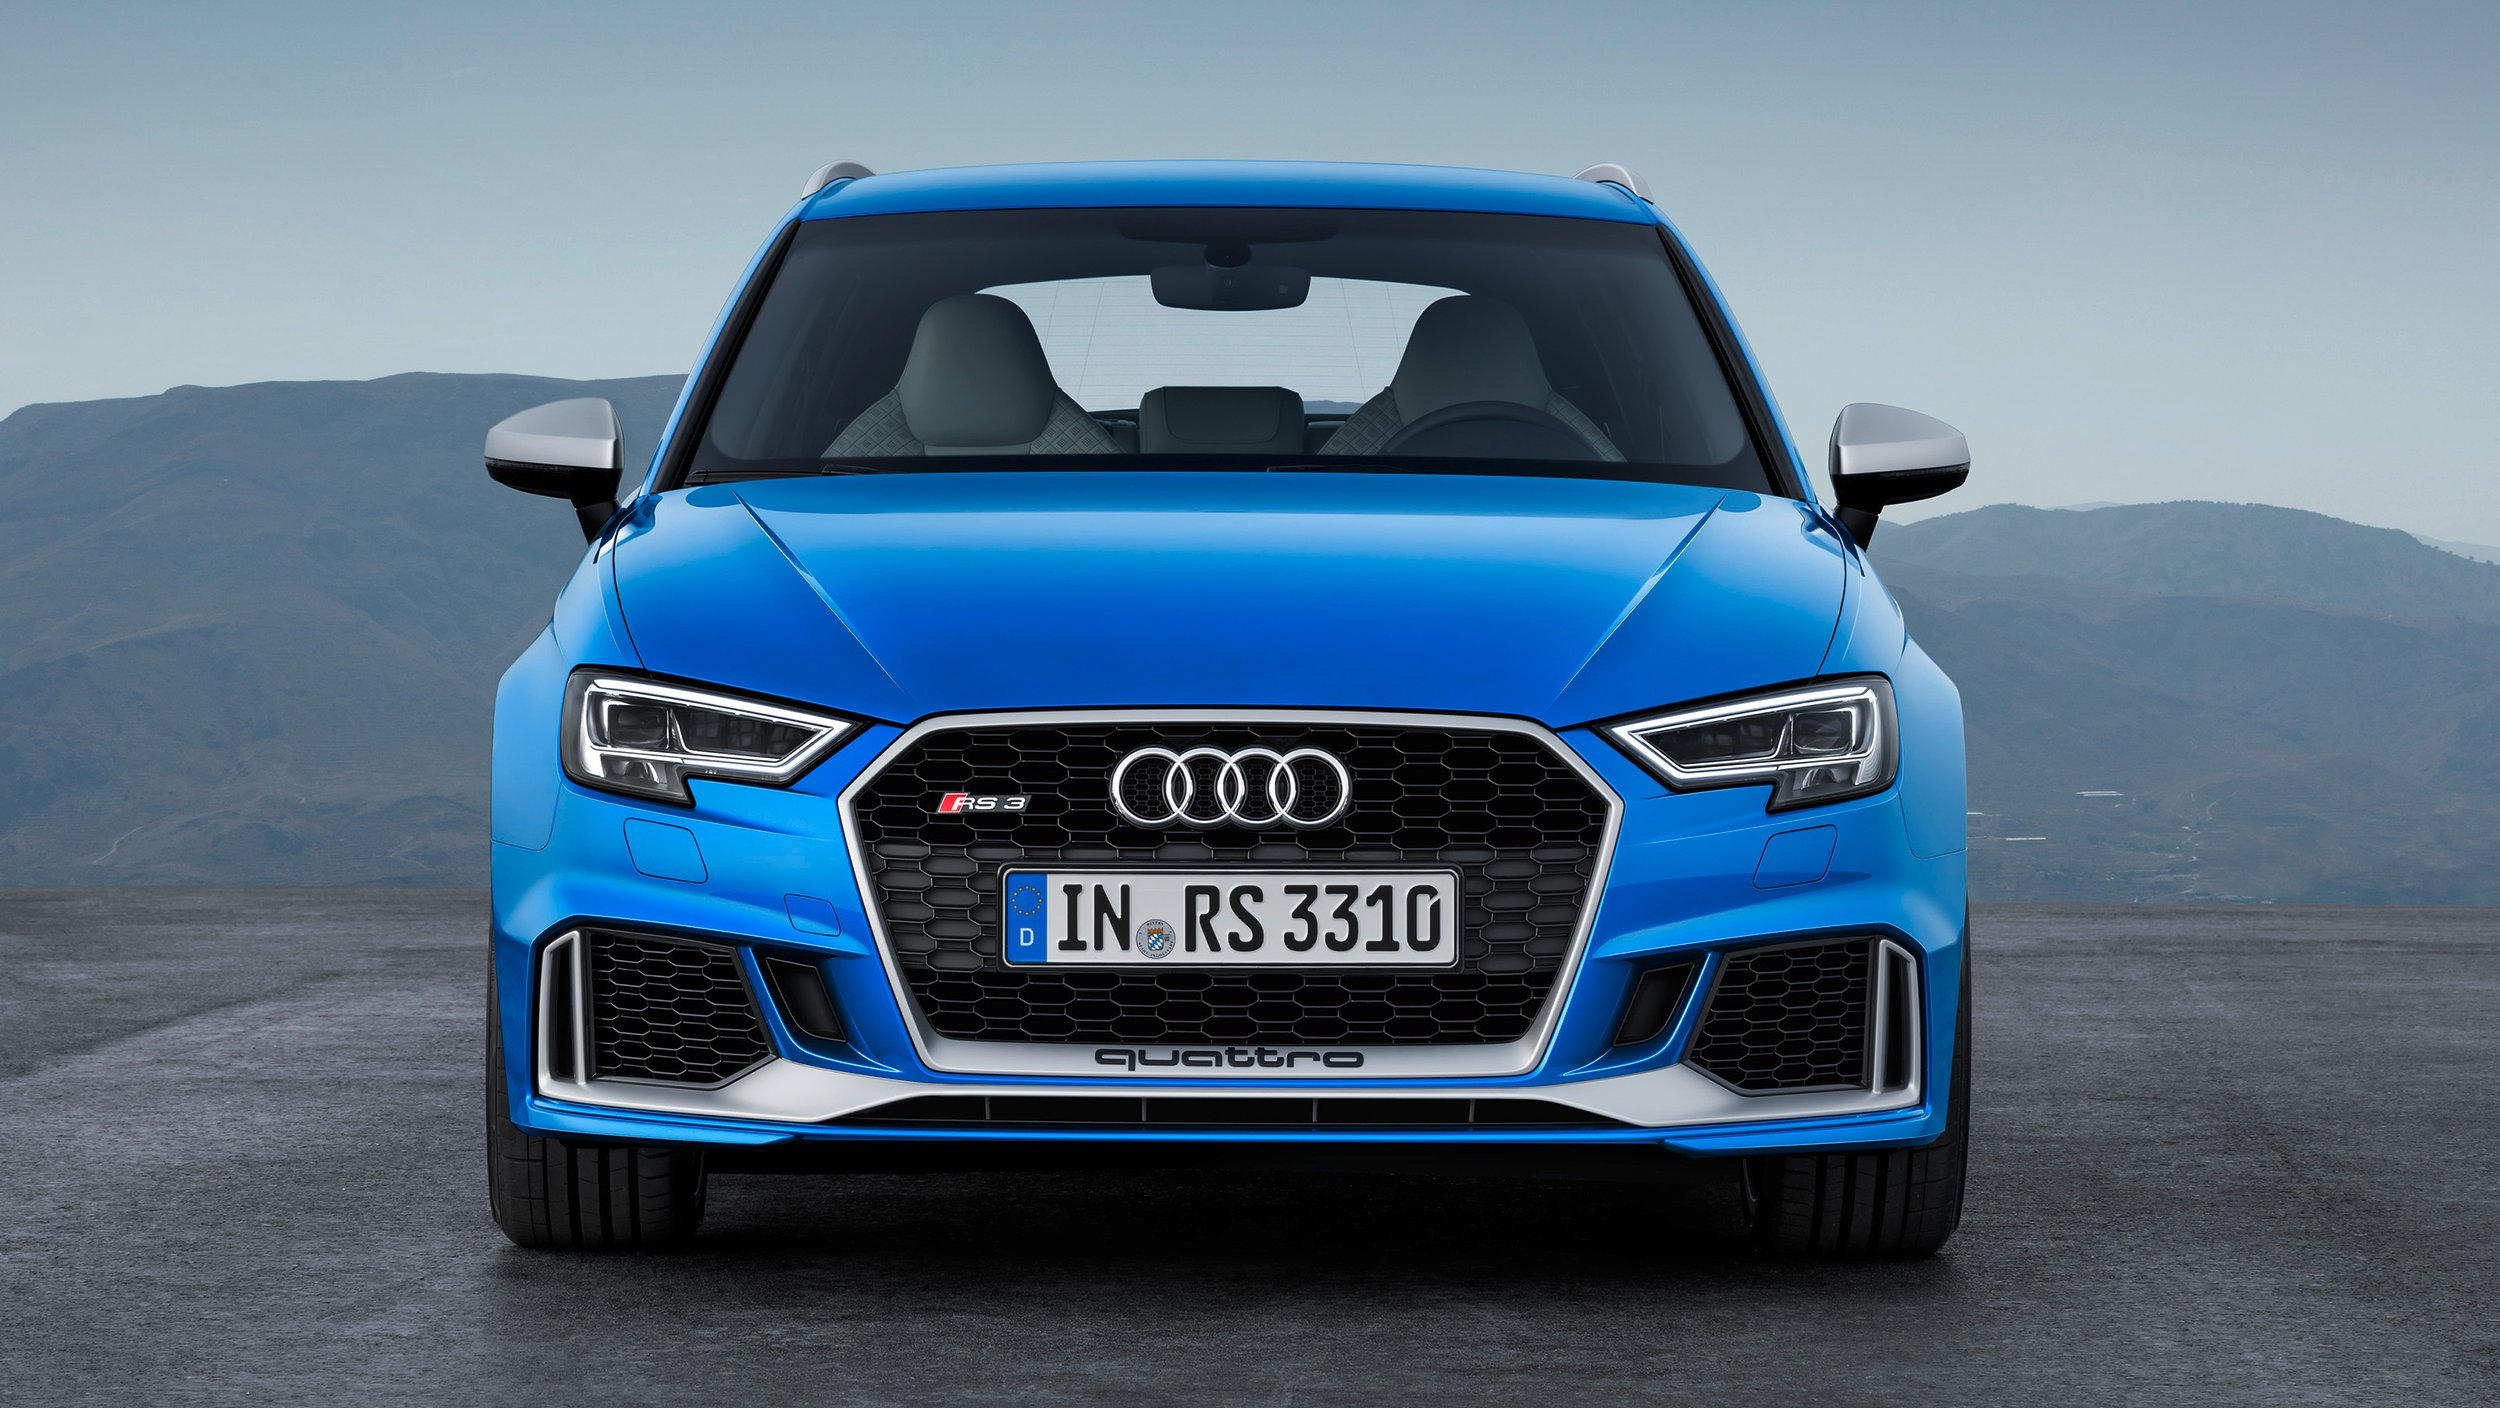 2018 audi rs3 sportback faster lighter more powerful photos 1 of 5. Black Bedroom Furniture Sets. Home Design Ideas